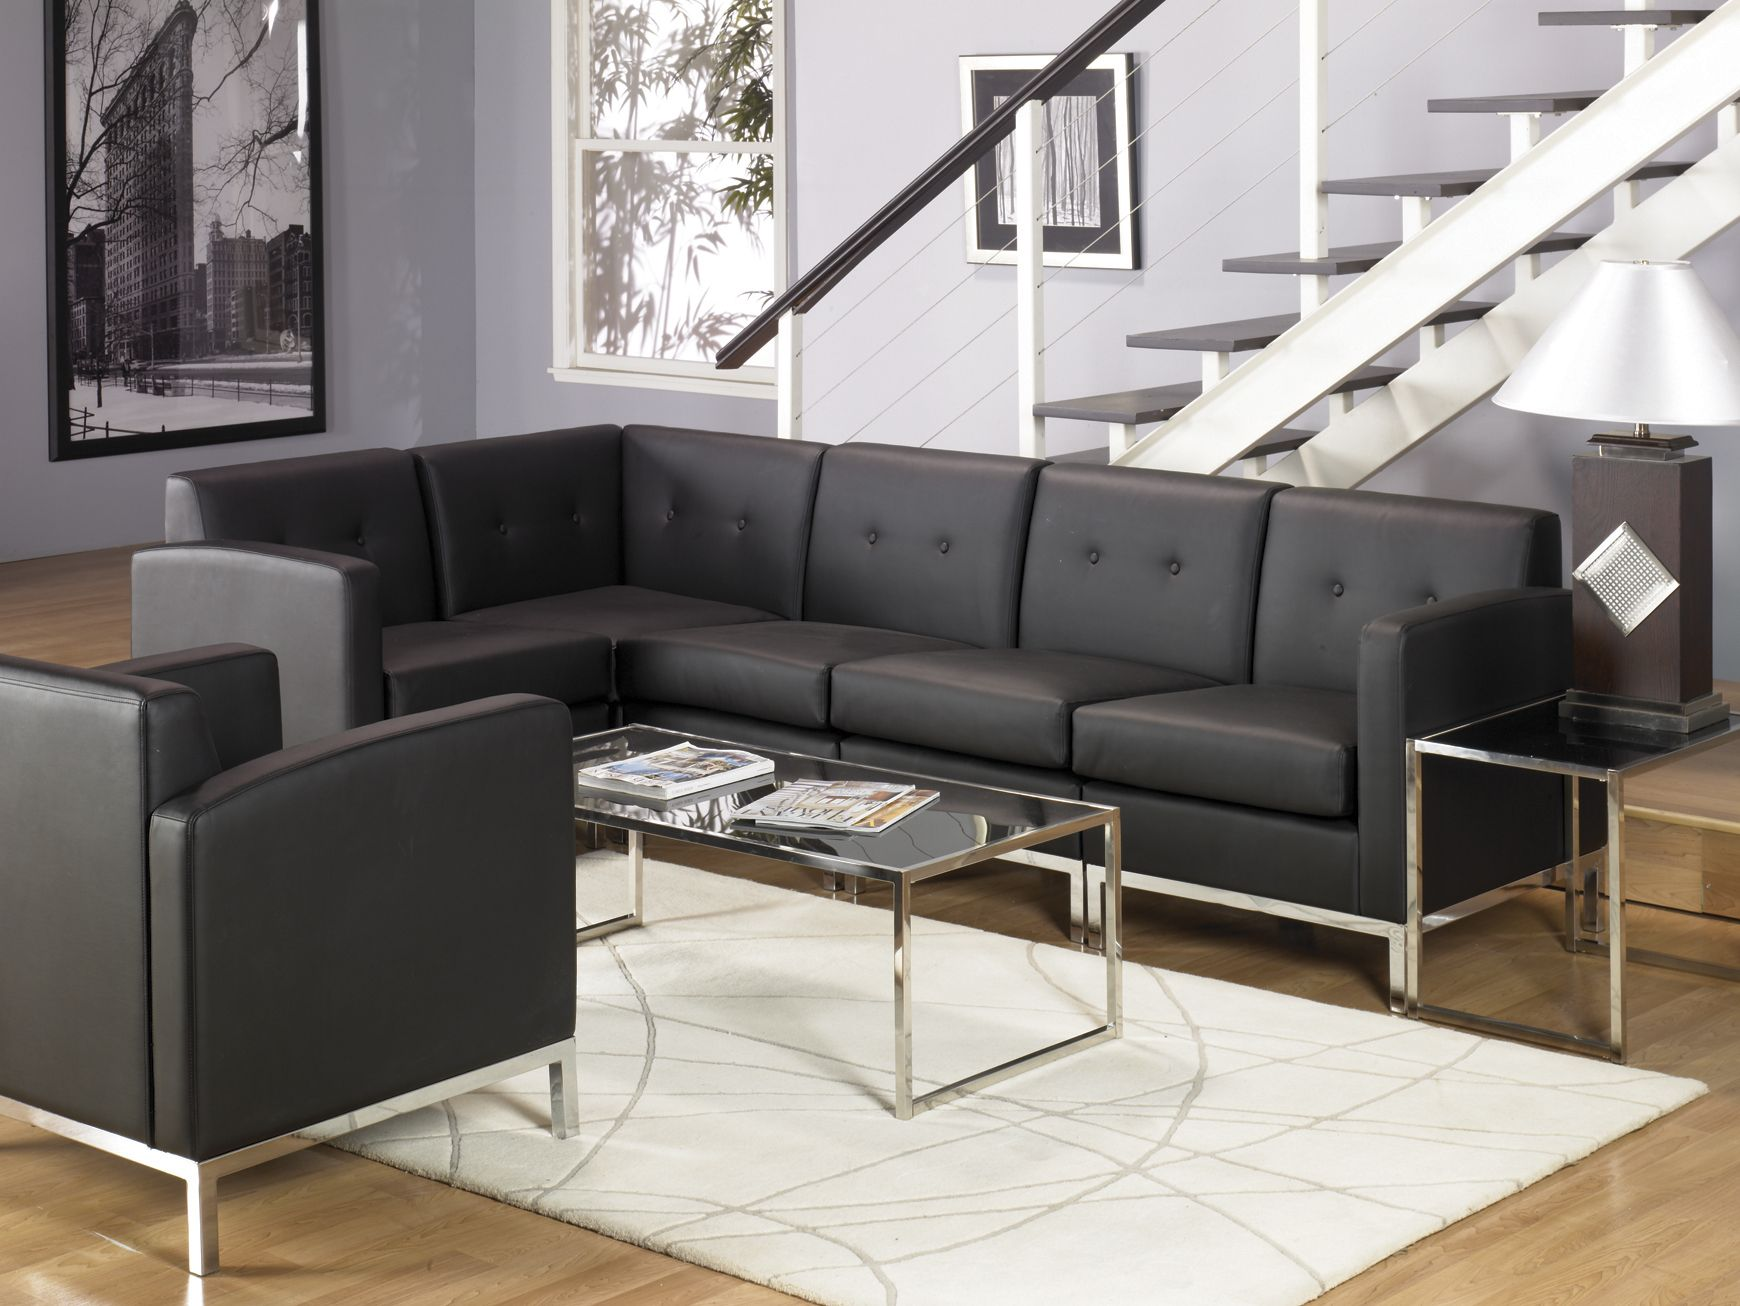 Wall Street Collection modular lounge Make your couch as large or